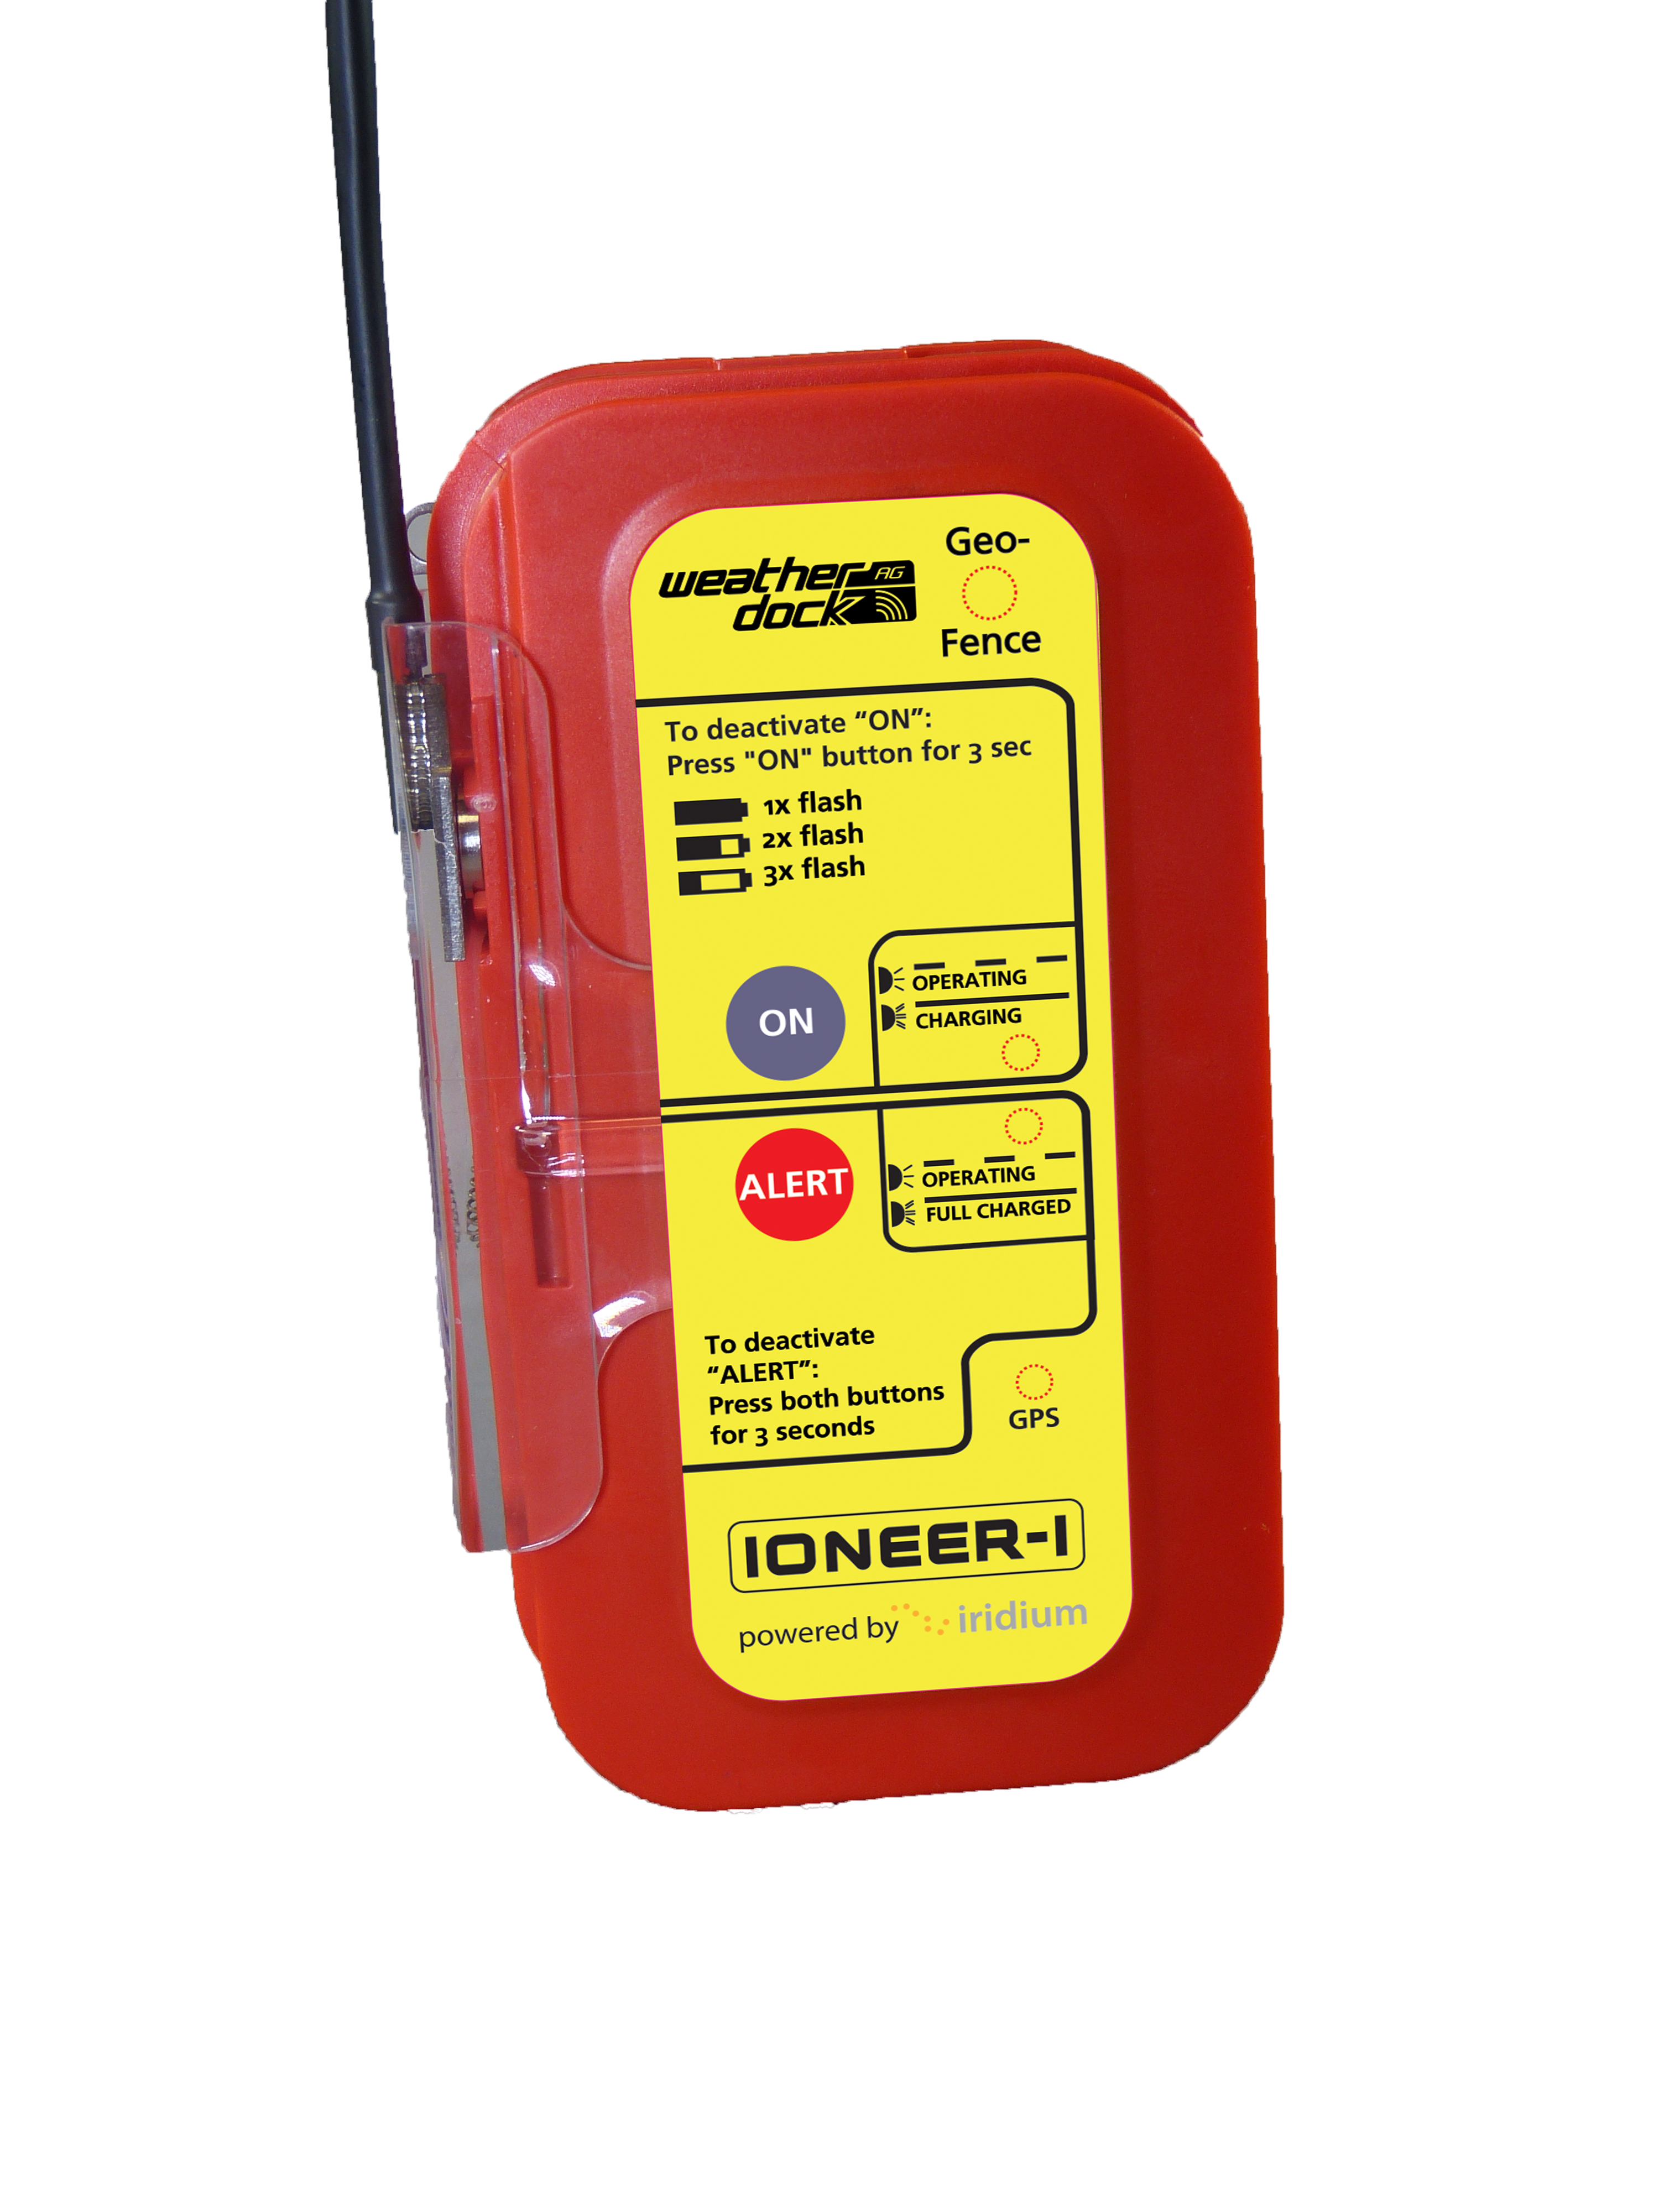 Ioneer-I A19401 Product Imagery